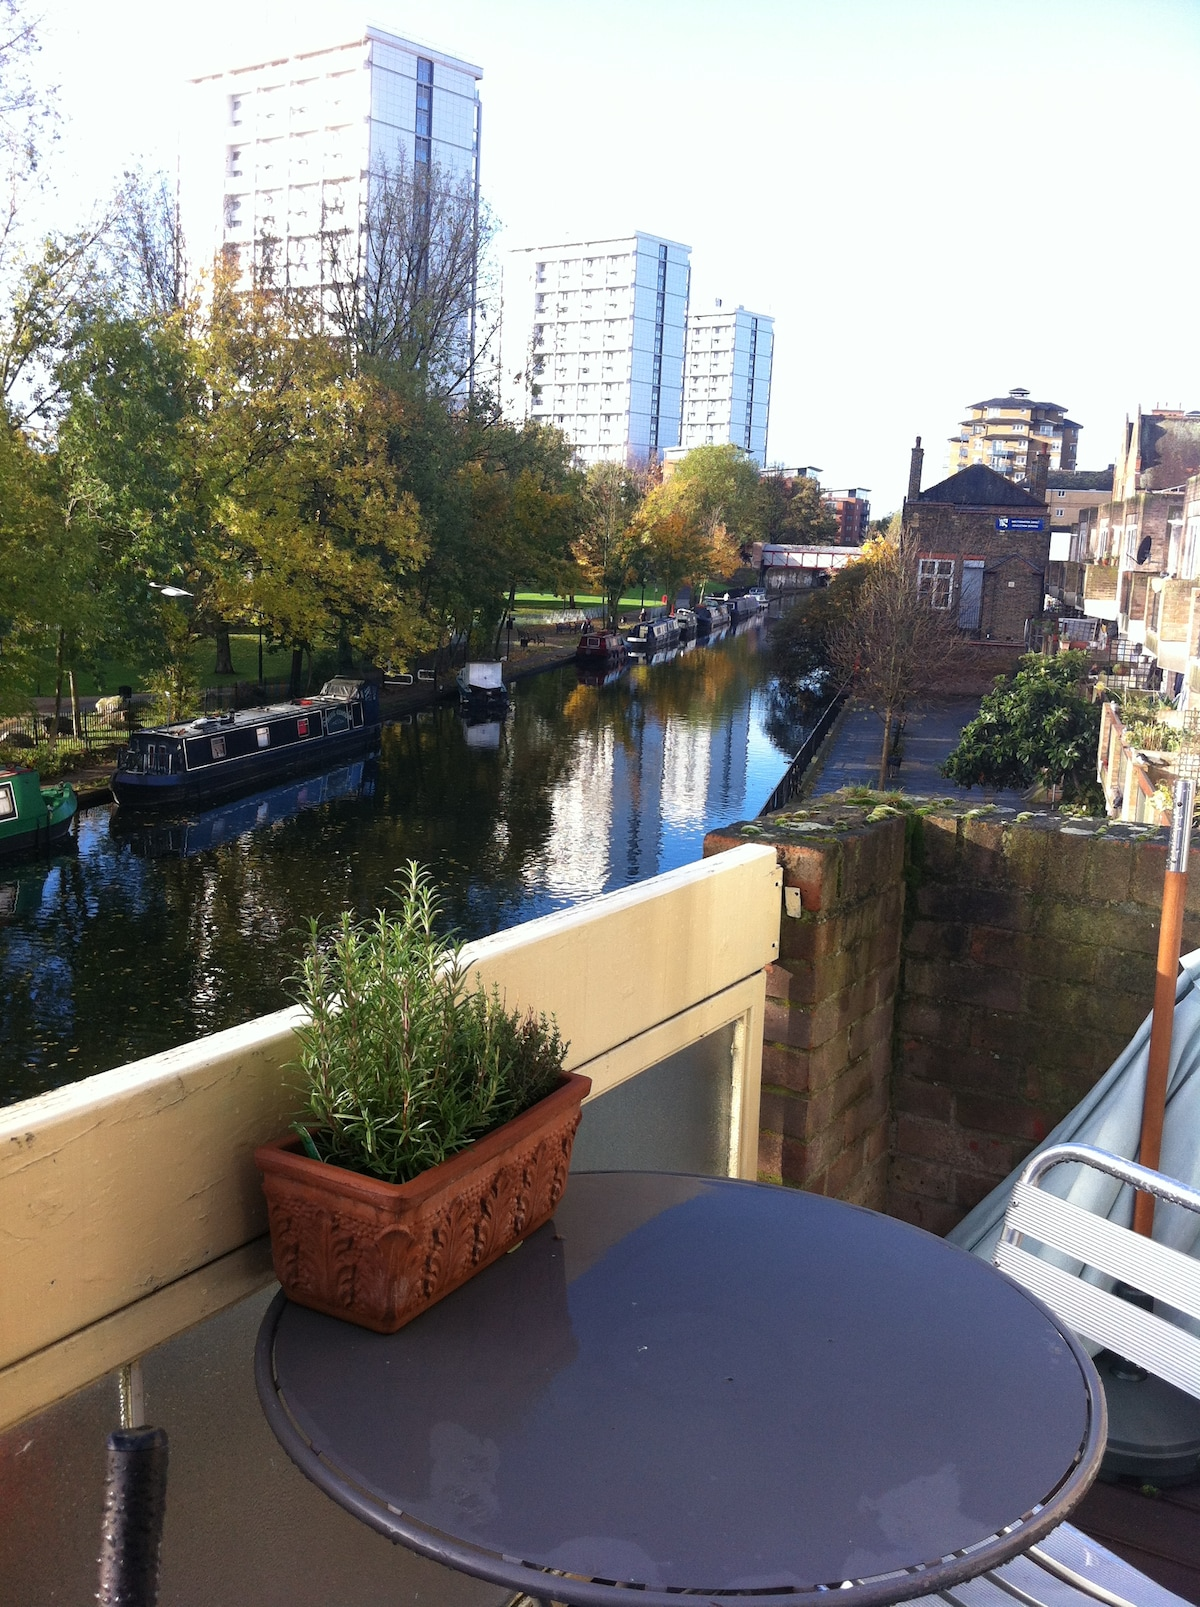 View over the canal.